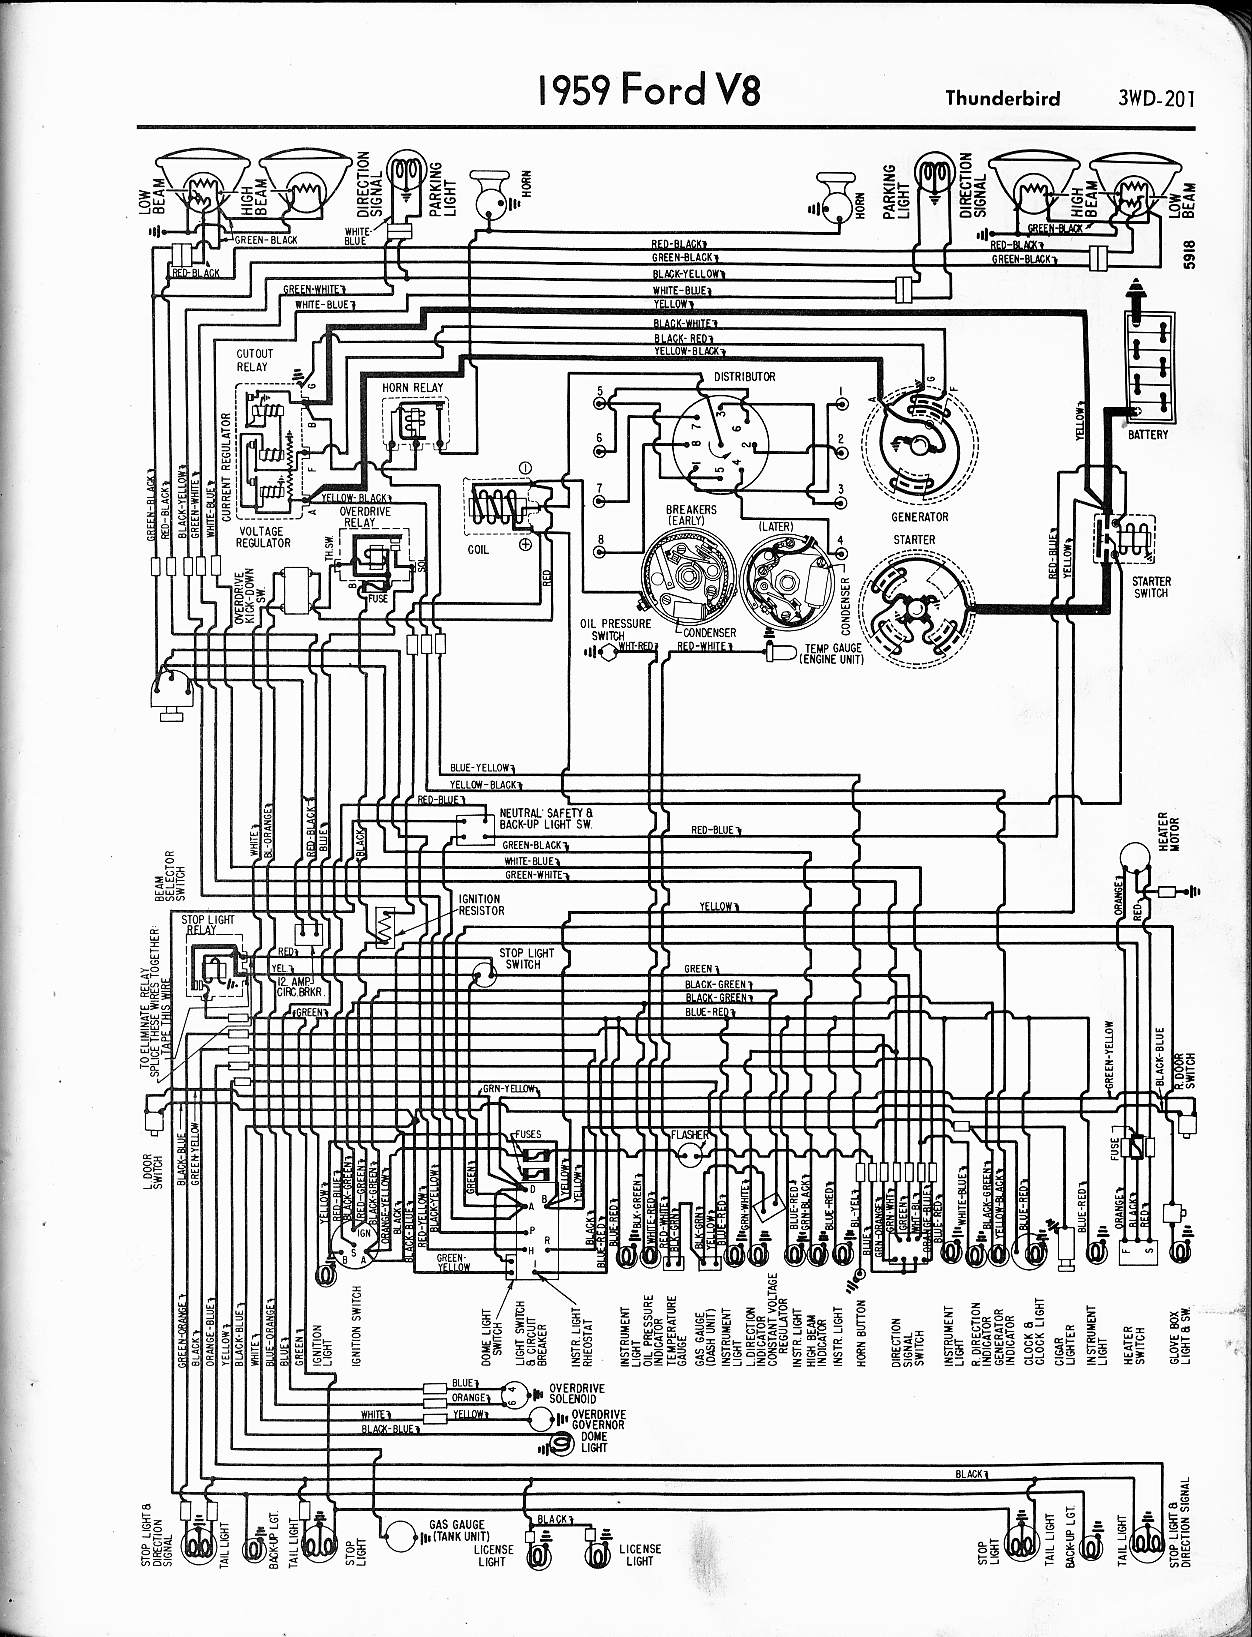 1970 ford ranchero wiring diagram schematic wiring diagram tutorial1972 ranchero wiring diagram wiring diagram data schema1972 ford ranchero wiring diagram wiring diagram read 1972